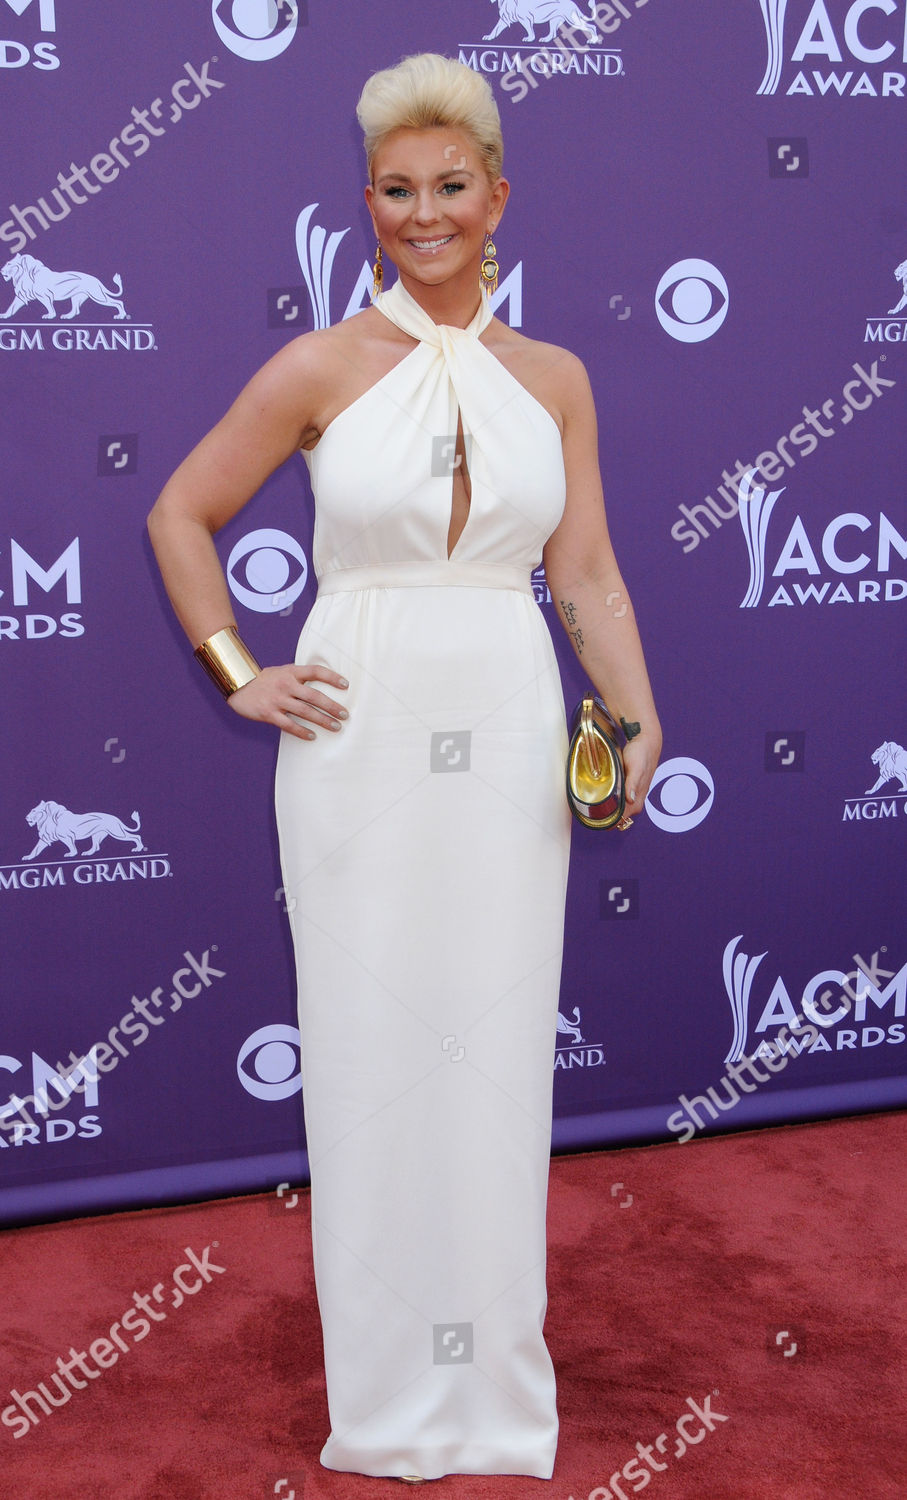 Stock photo of 48th Annual Academy of Country Music Awards, Las Vegas, America - 07 Apr 2013